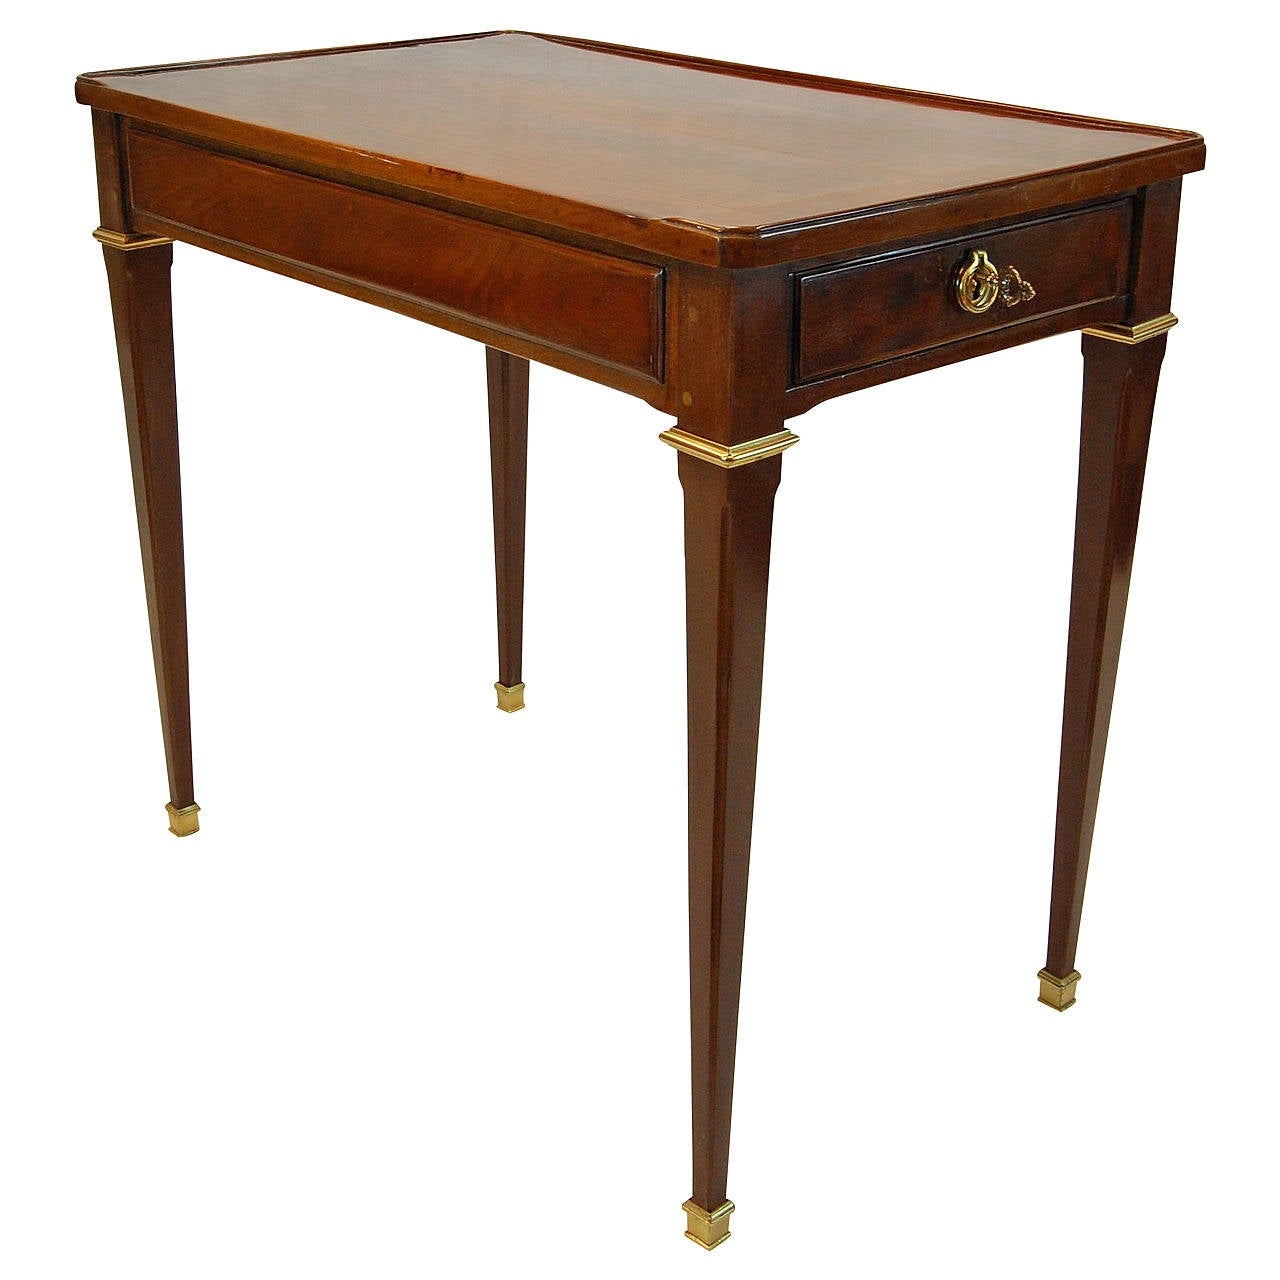 royal louis xvi mahogany table ecrire circa 1787. Black Bedroom Furniture Sets. Home Design Ideas